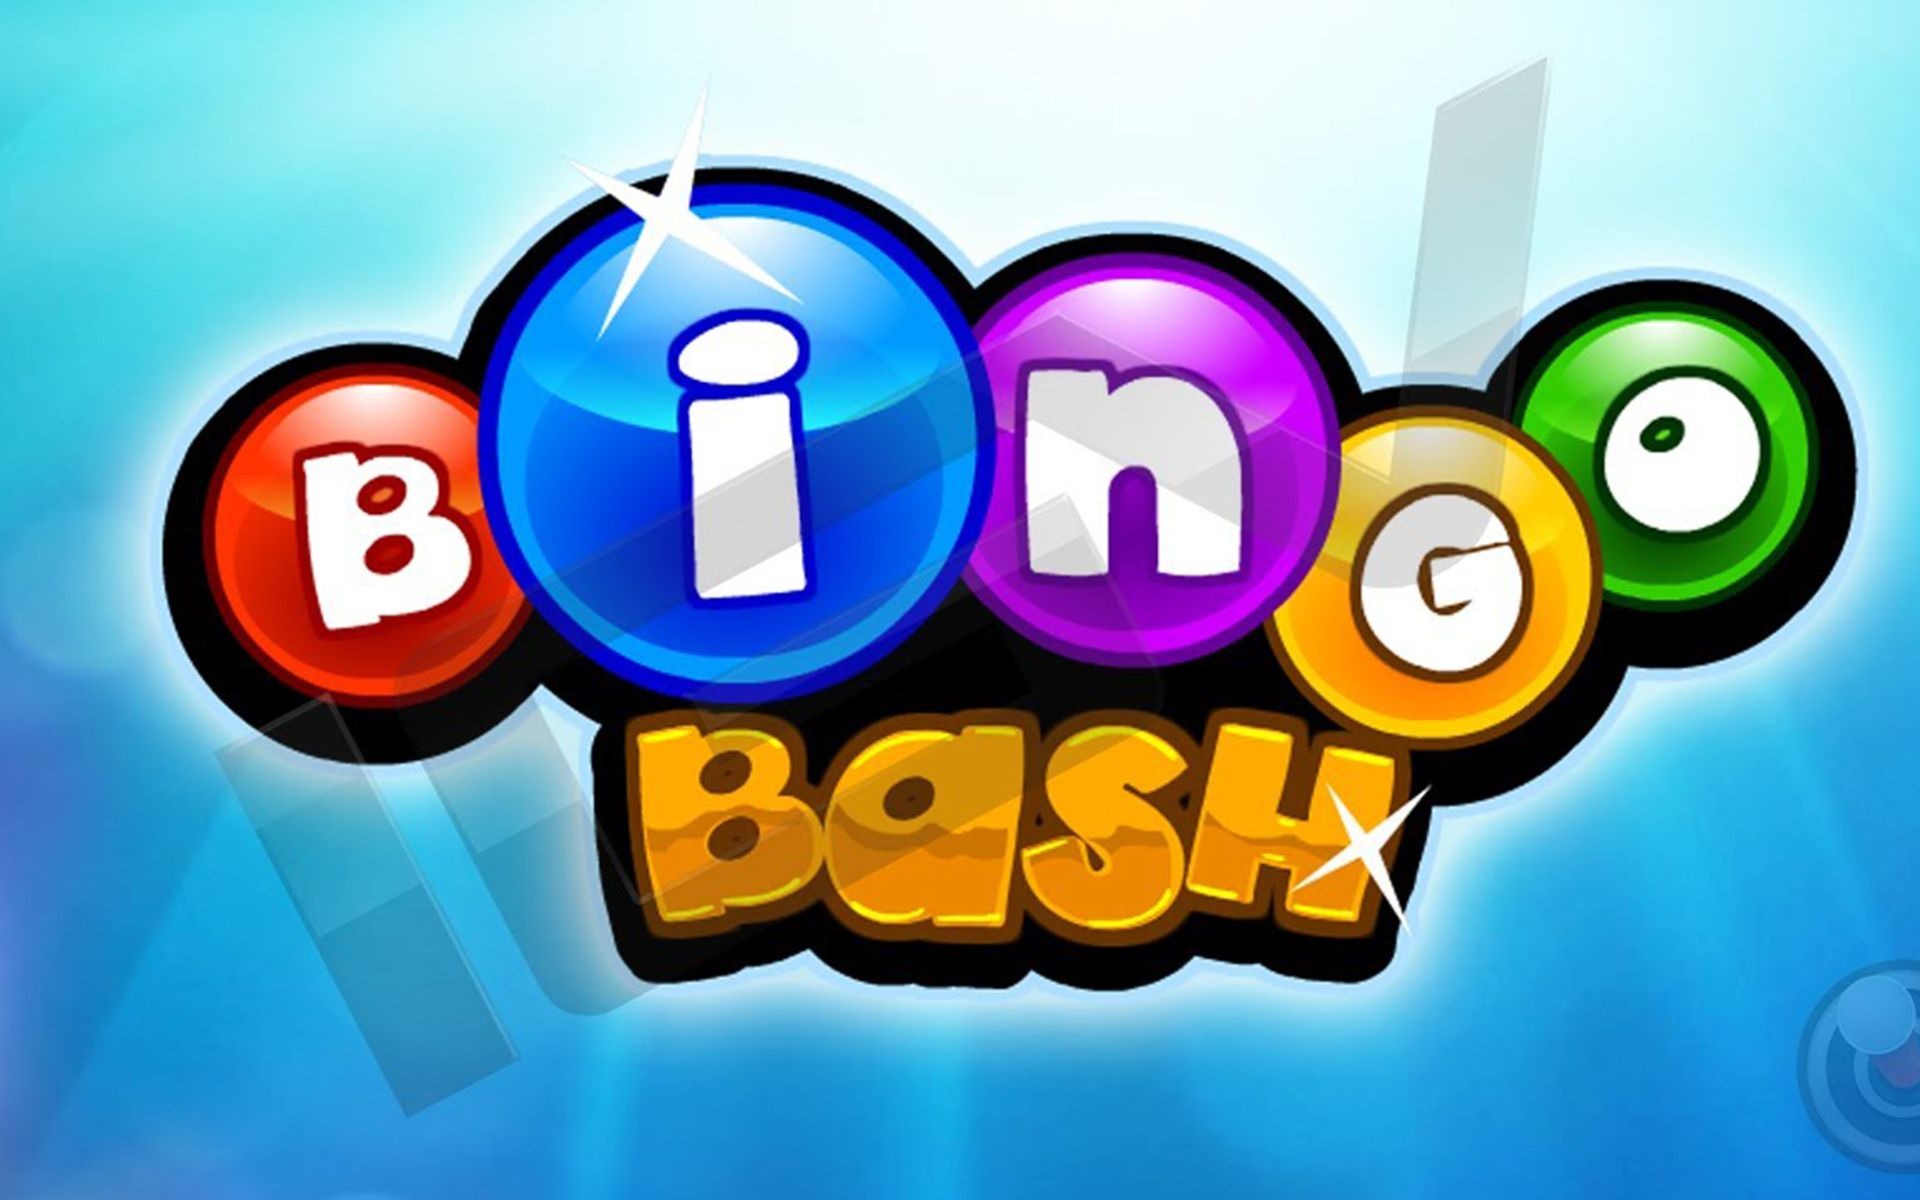 Pin by Romel Cabico on Free Games, Mobile casino, Casino